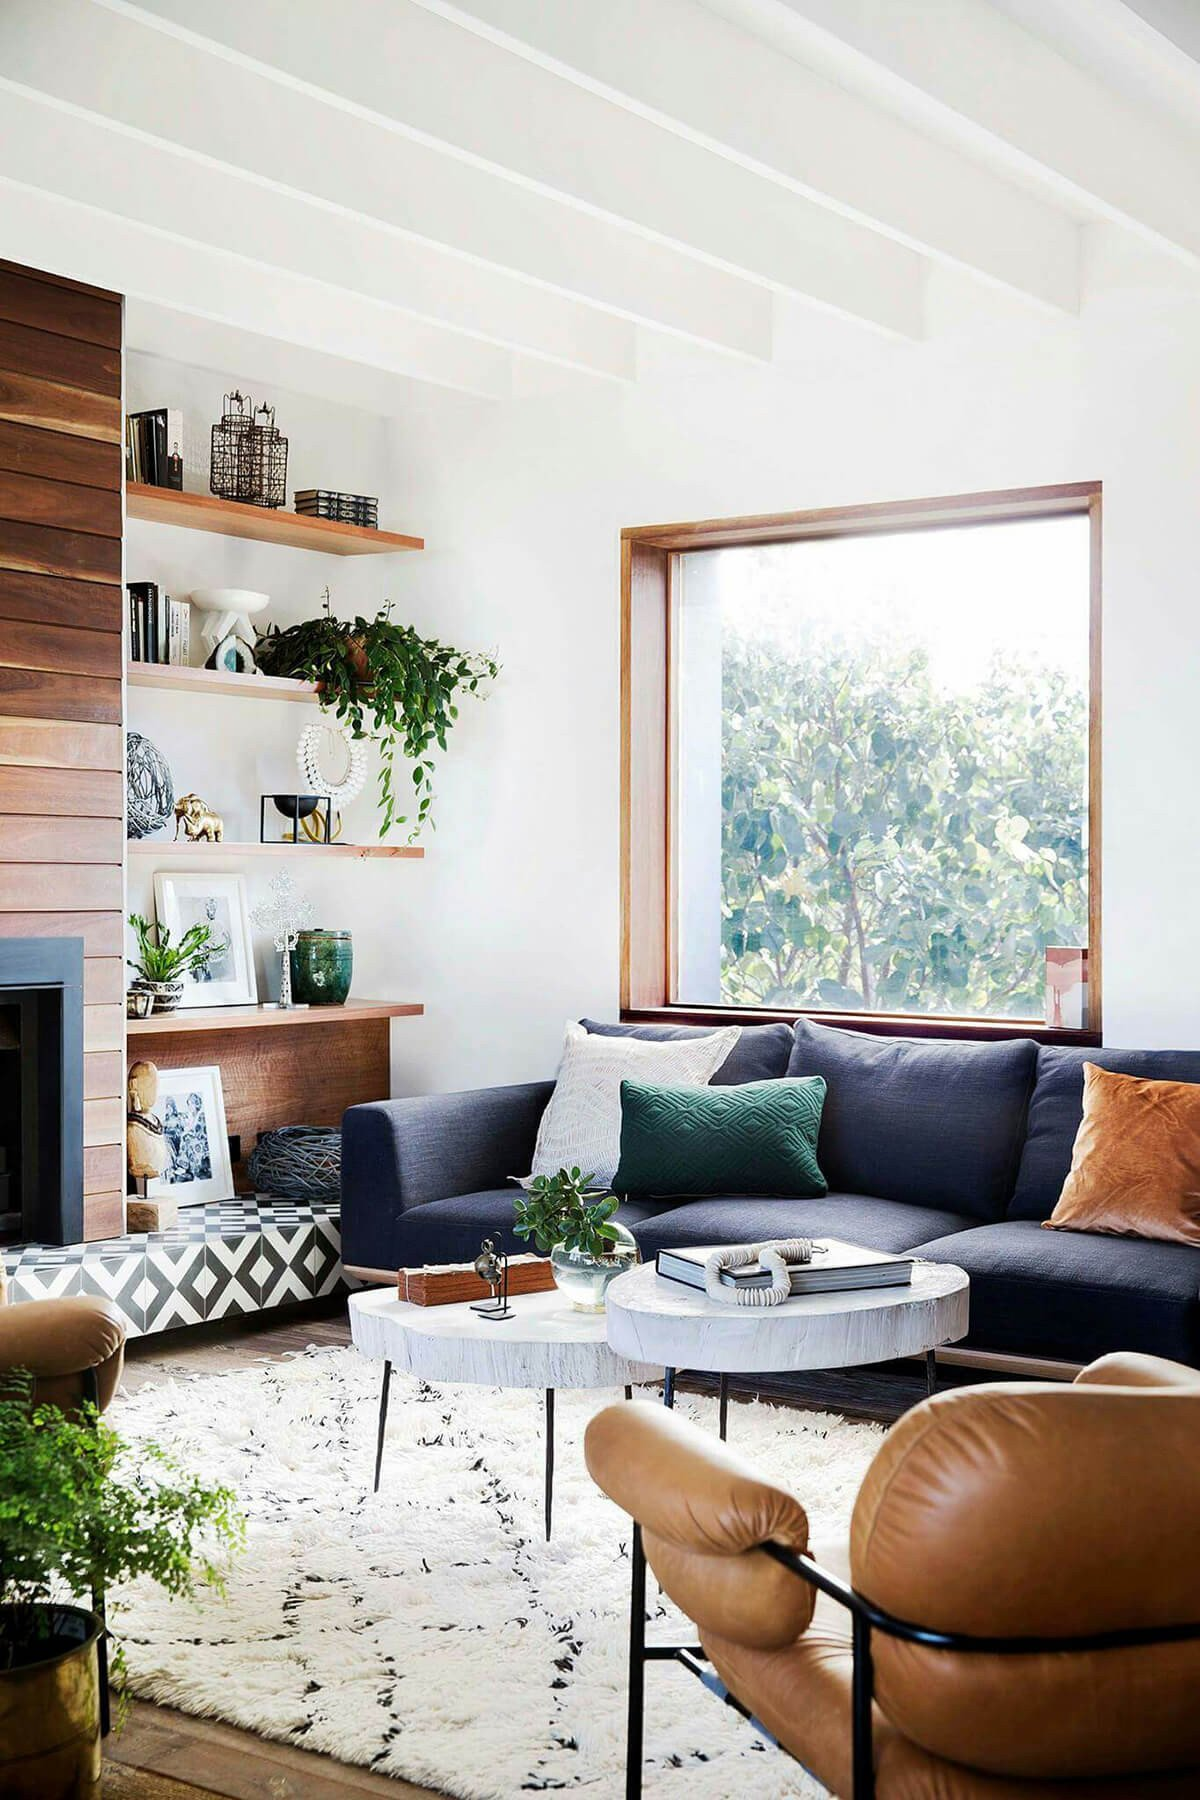 Living Room Ideas Contemporary Unique 26 Best Modern Living Room Decorating Ideas and Designs